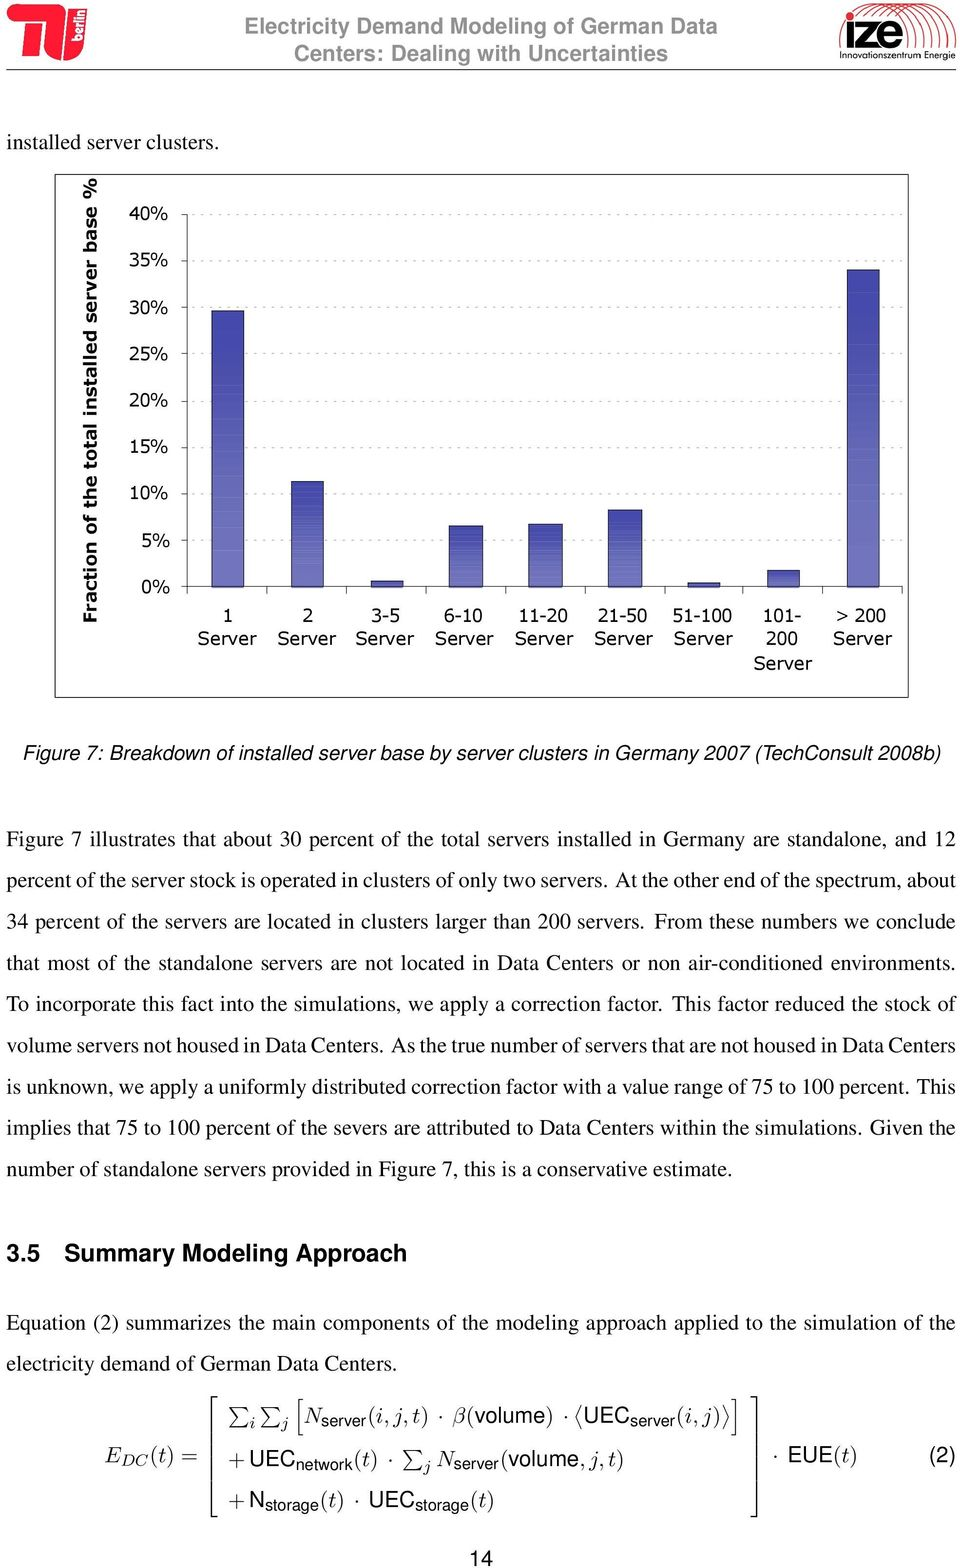 Breakdown of installed server base by server clusters in Germany 2007 (TechConsult 2008b) Figure 7 illustrates that about 30 percent of the total servers installed in Germany are standalone, and 12